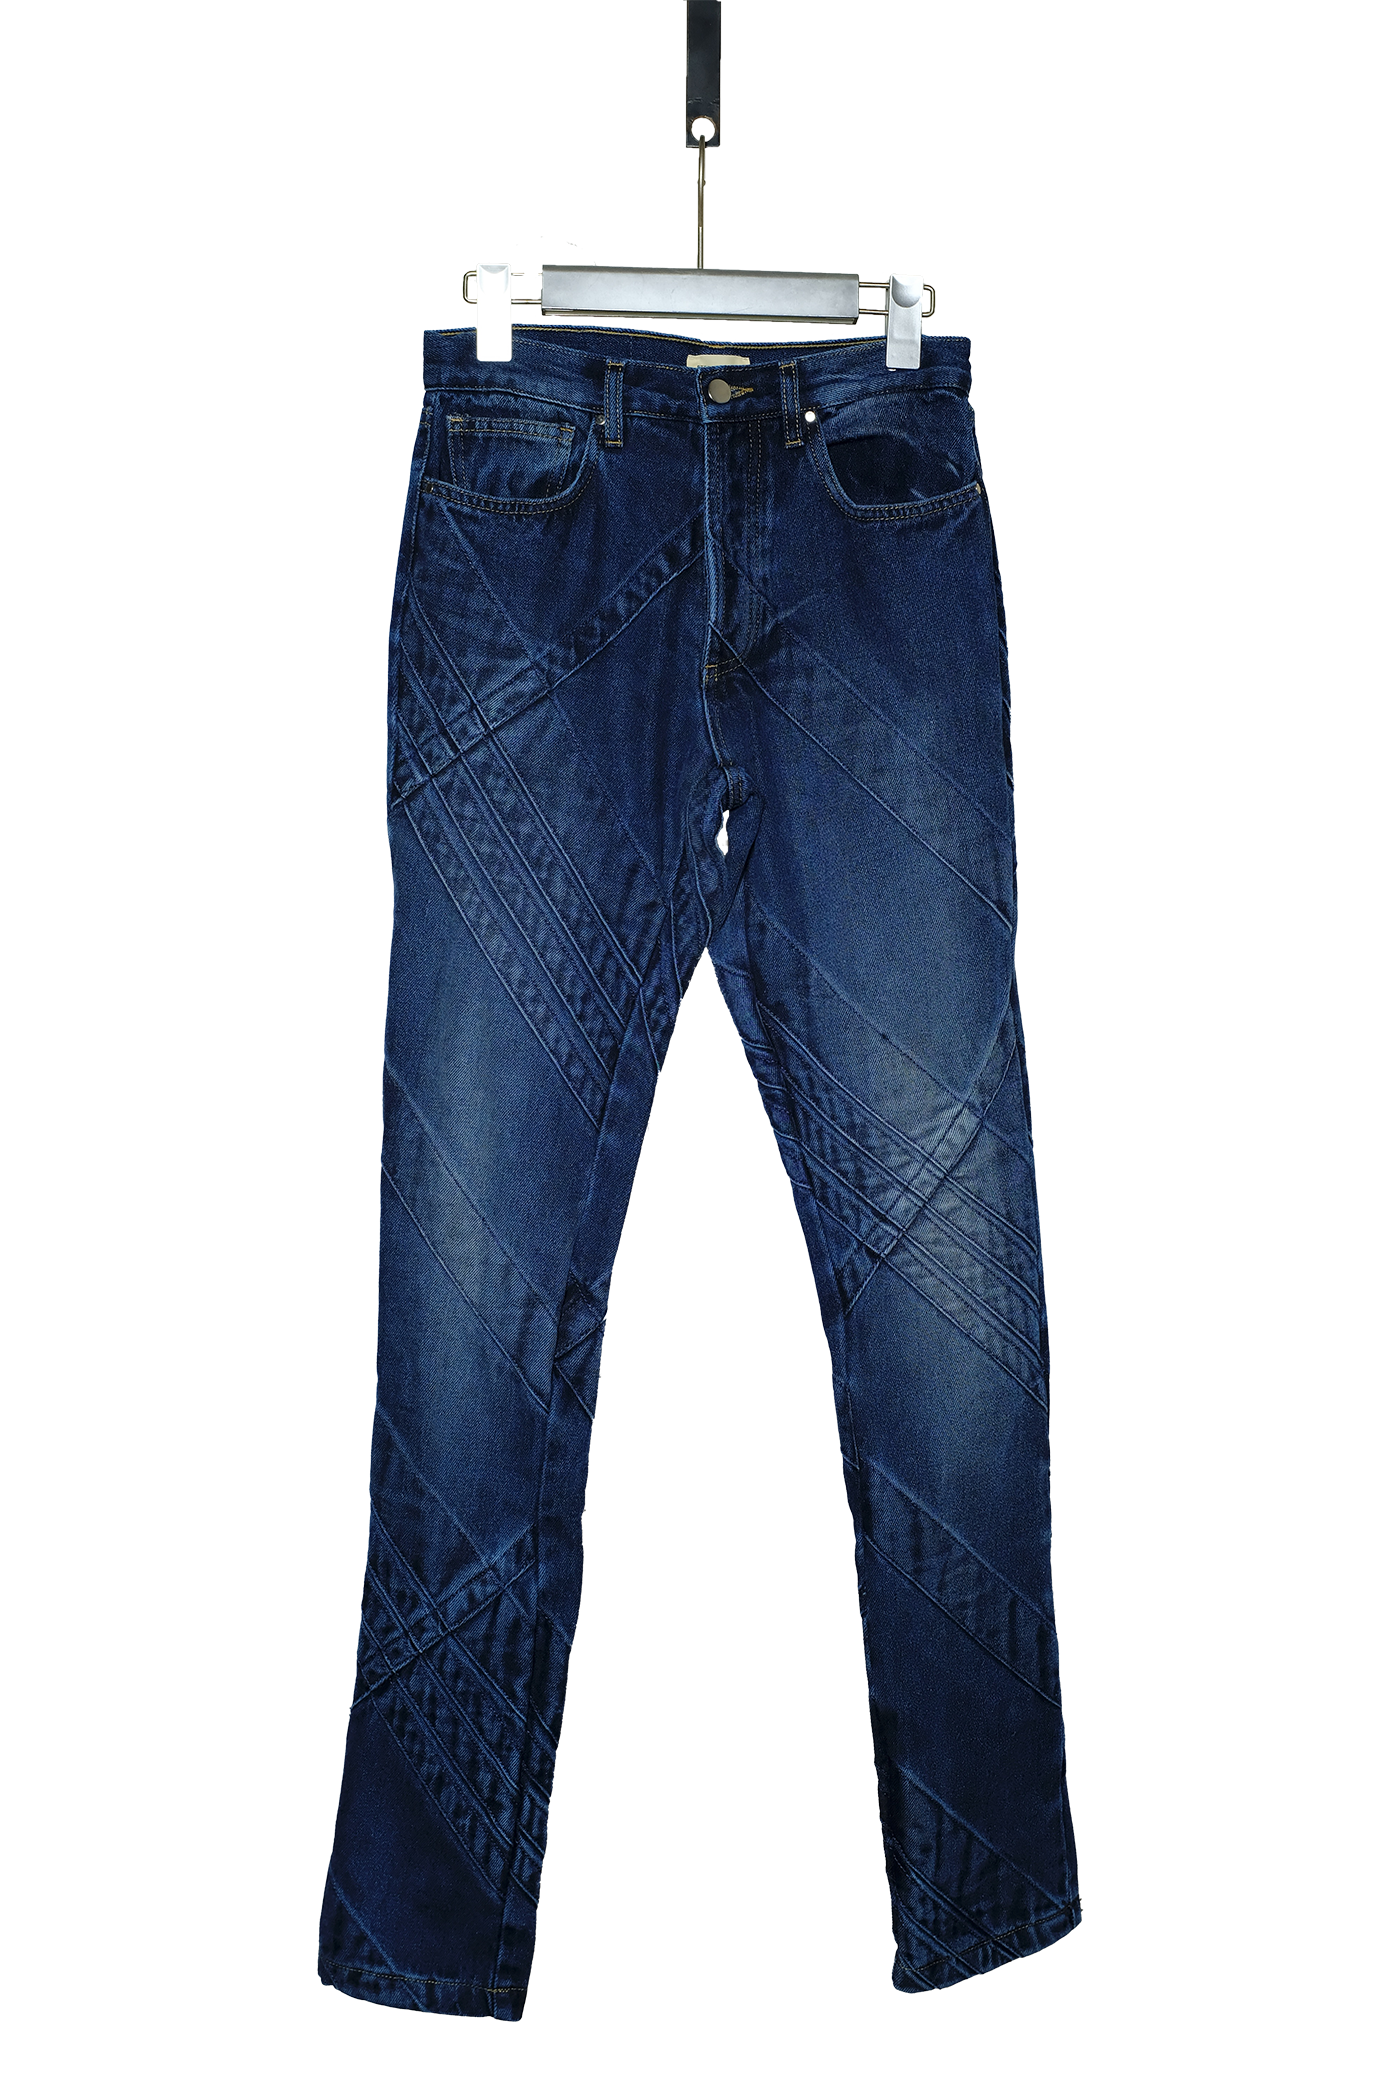 JEANS WITH SEAM DETAILS